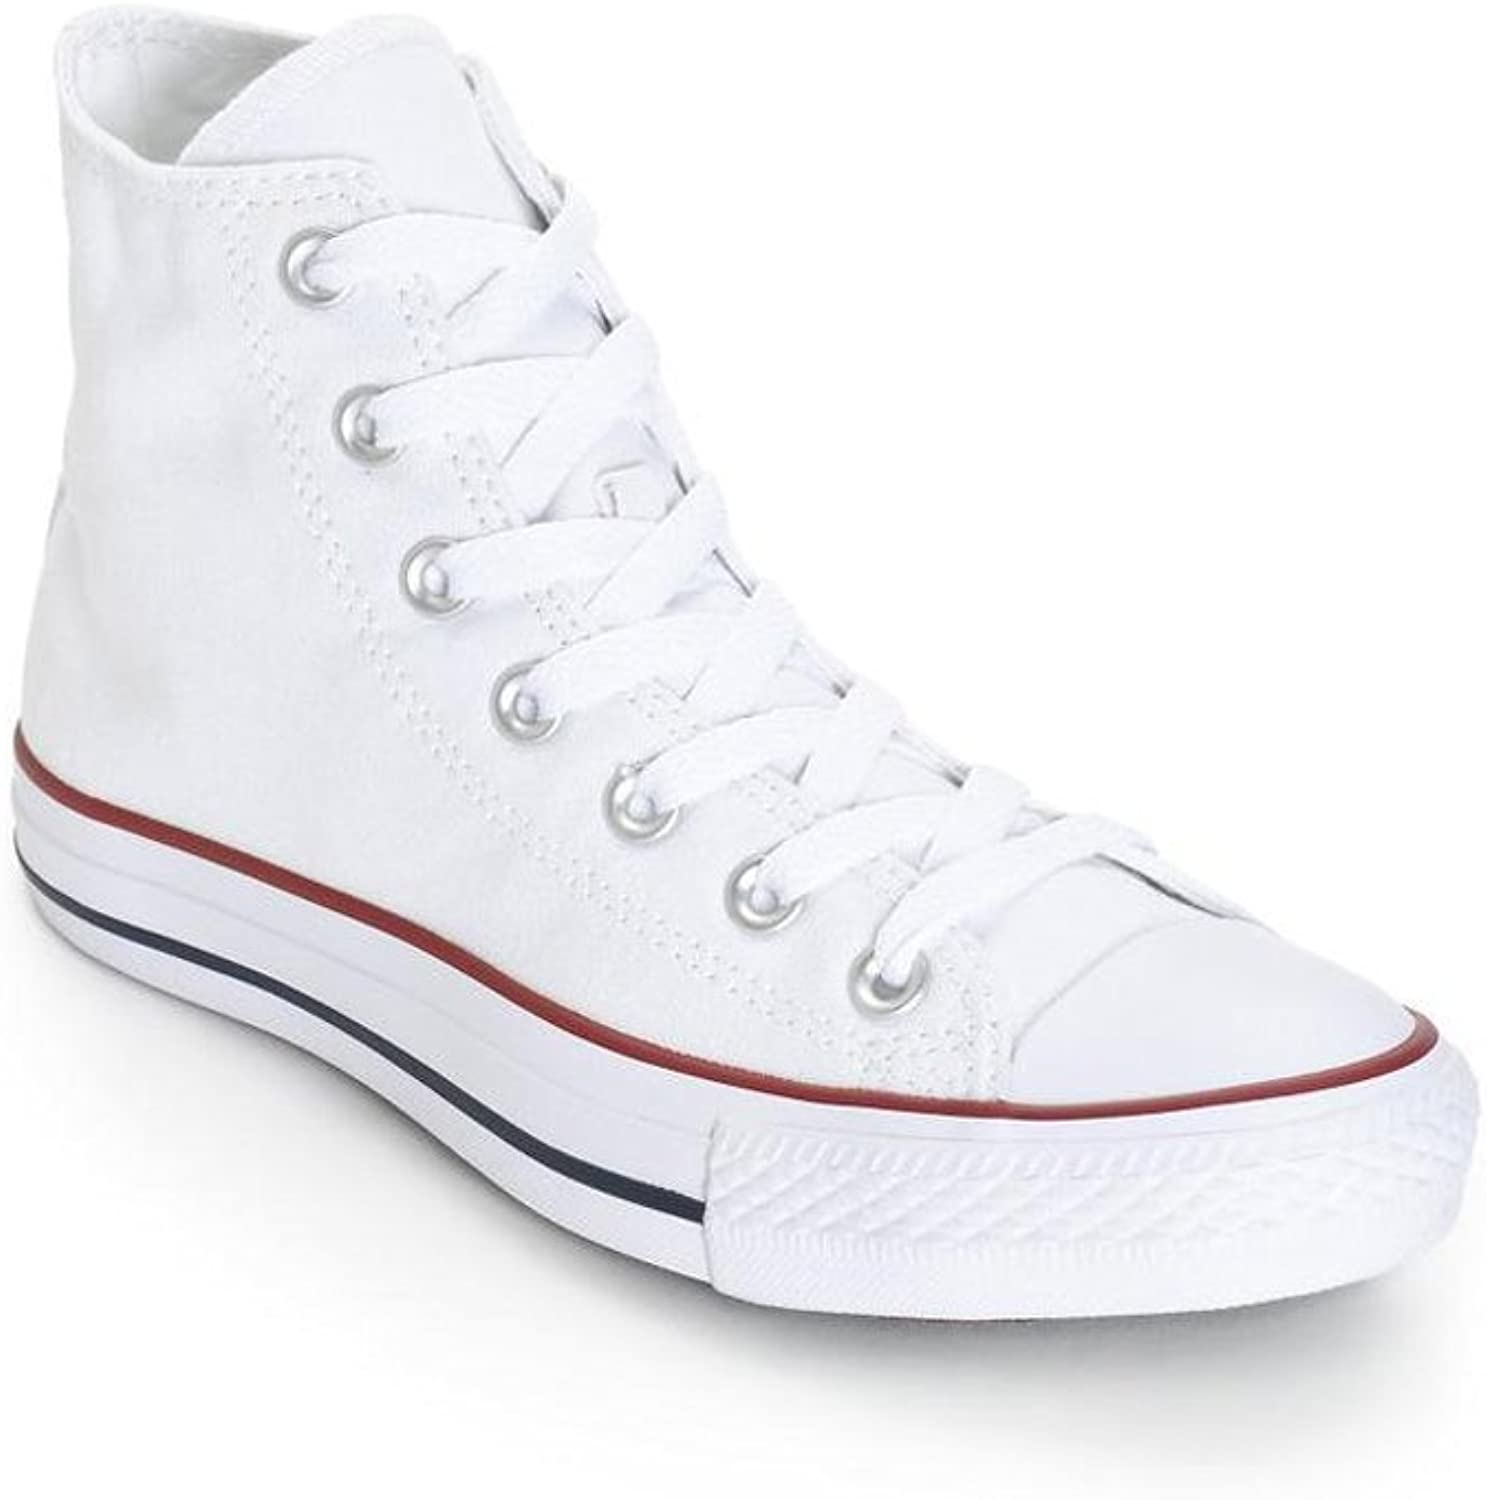 Converse Unisex Chuck Taylor All Star High Top Sneakers (6.5 (Men)   8.5 (Women) US, Optical White)